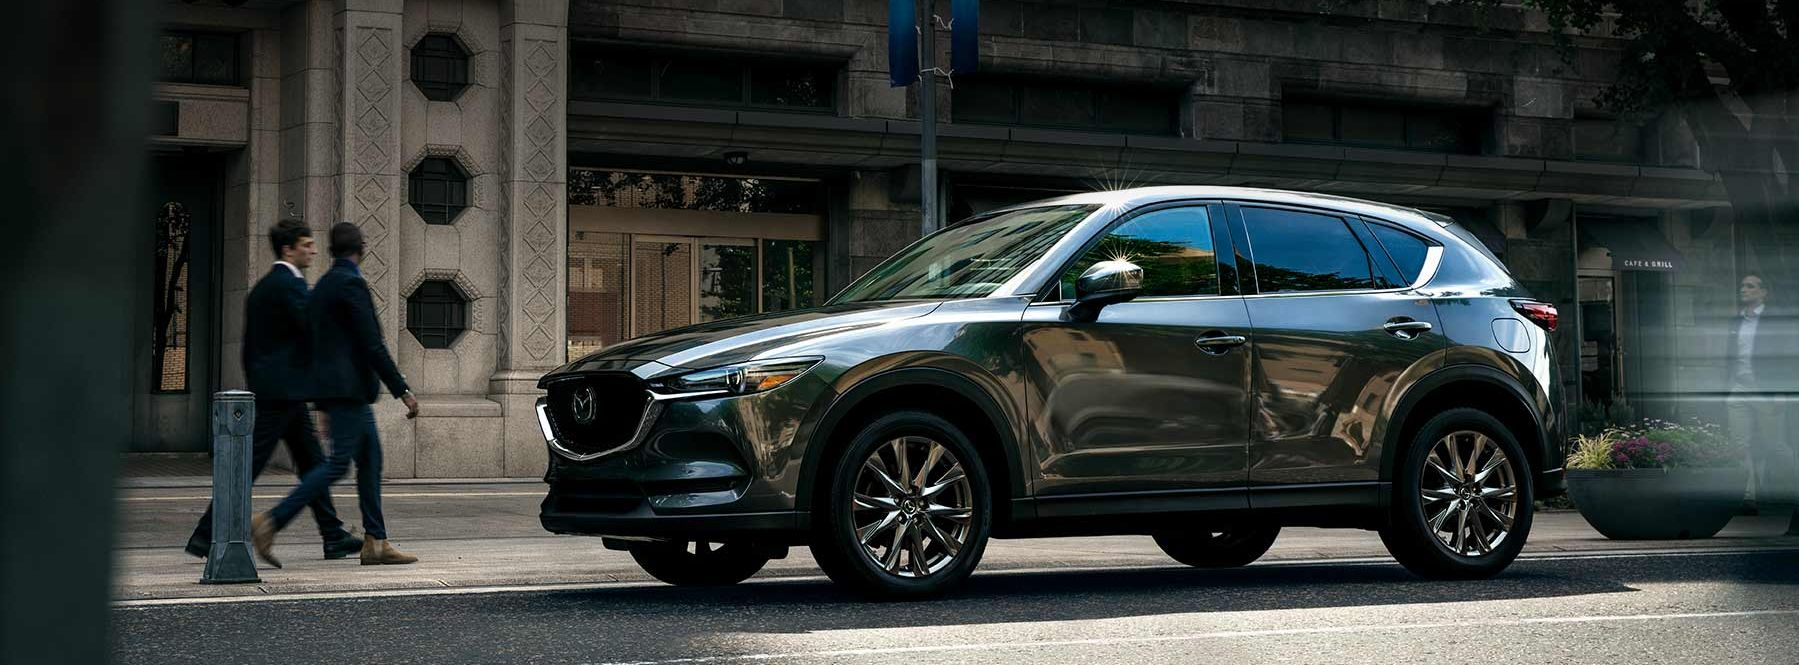 2019 Mazda CX-5 Financing near Seguin, TX